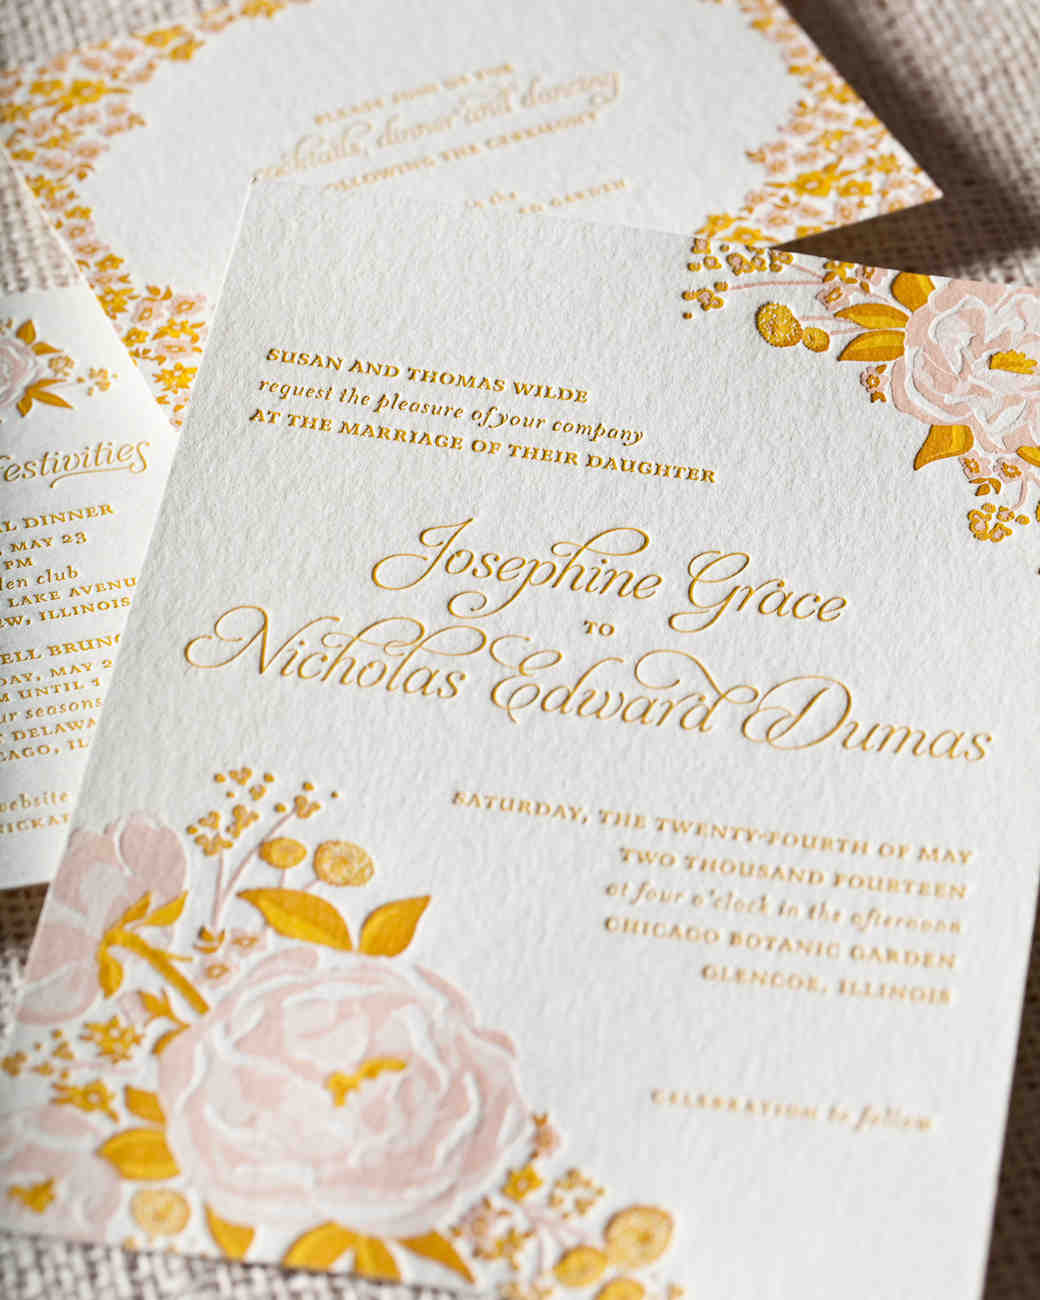 Wedding Ceremony And Reception In Same Location: 8 Details To Include When Wording Your Wedding Invitation